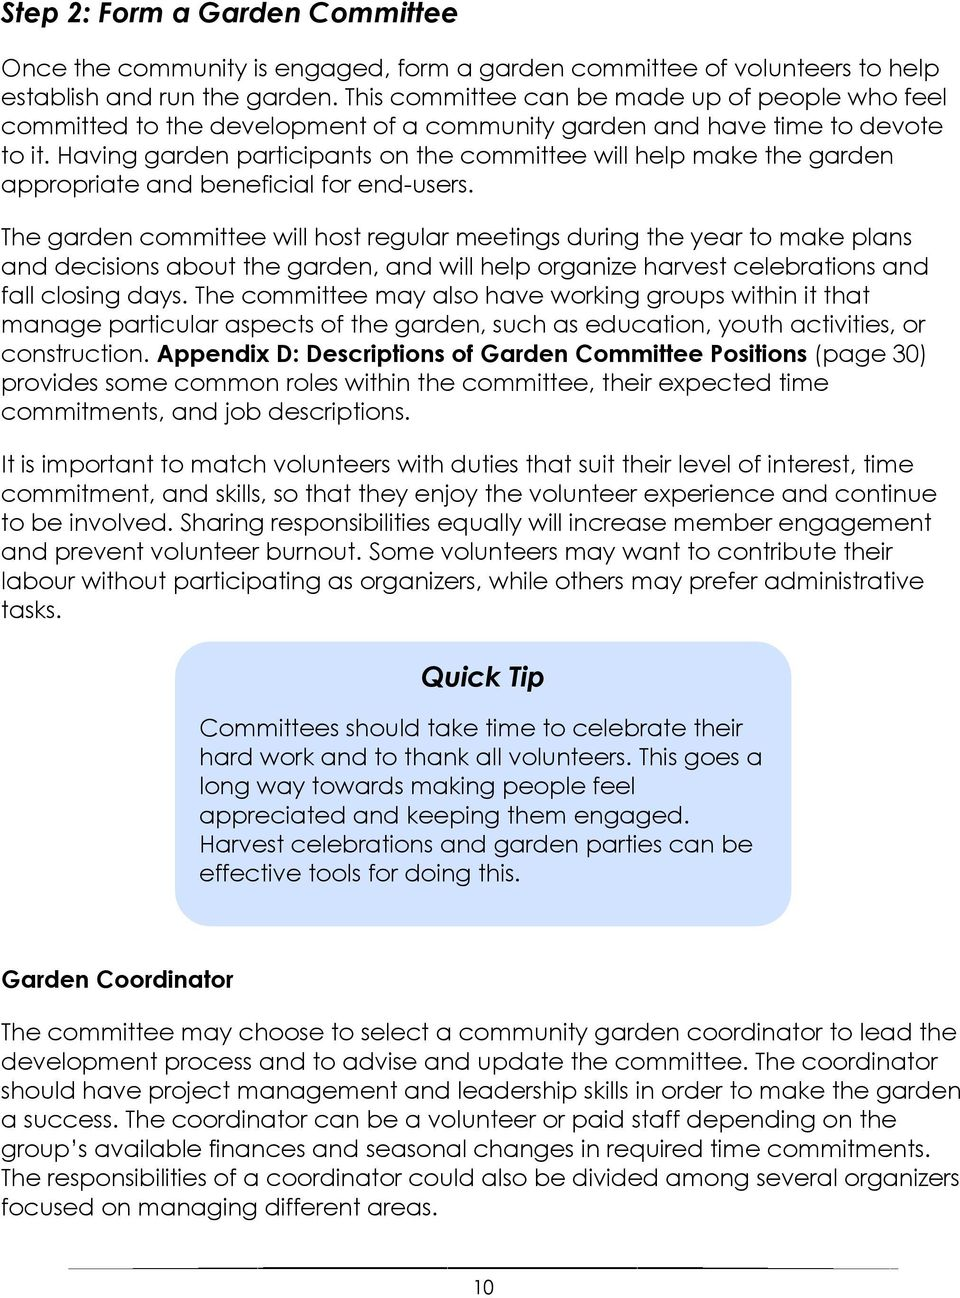 Having garden participants on the committee will help make the garden appropriate and beneficial for end-users.